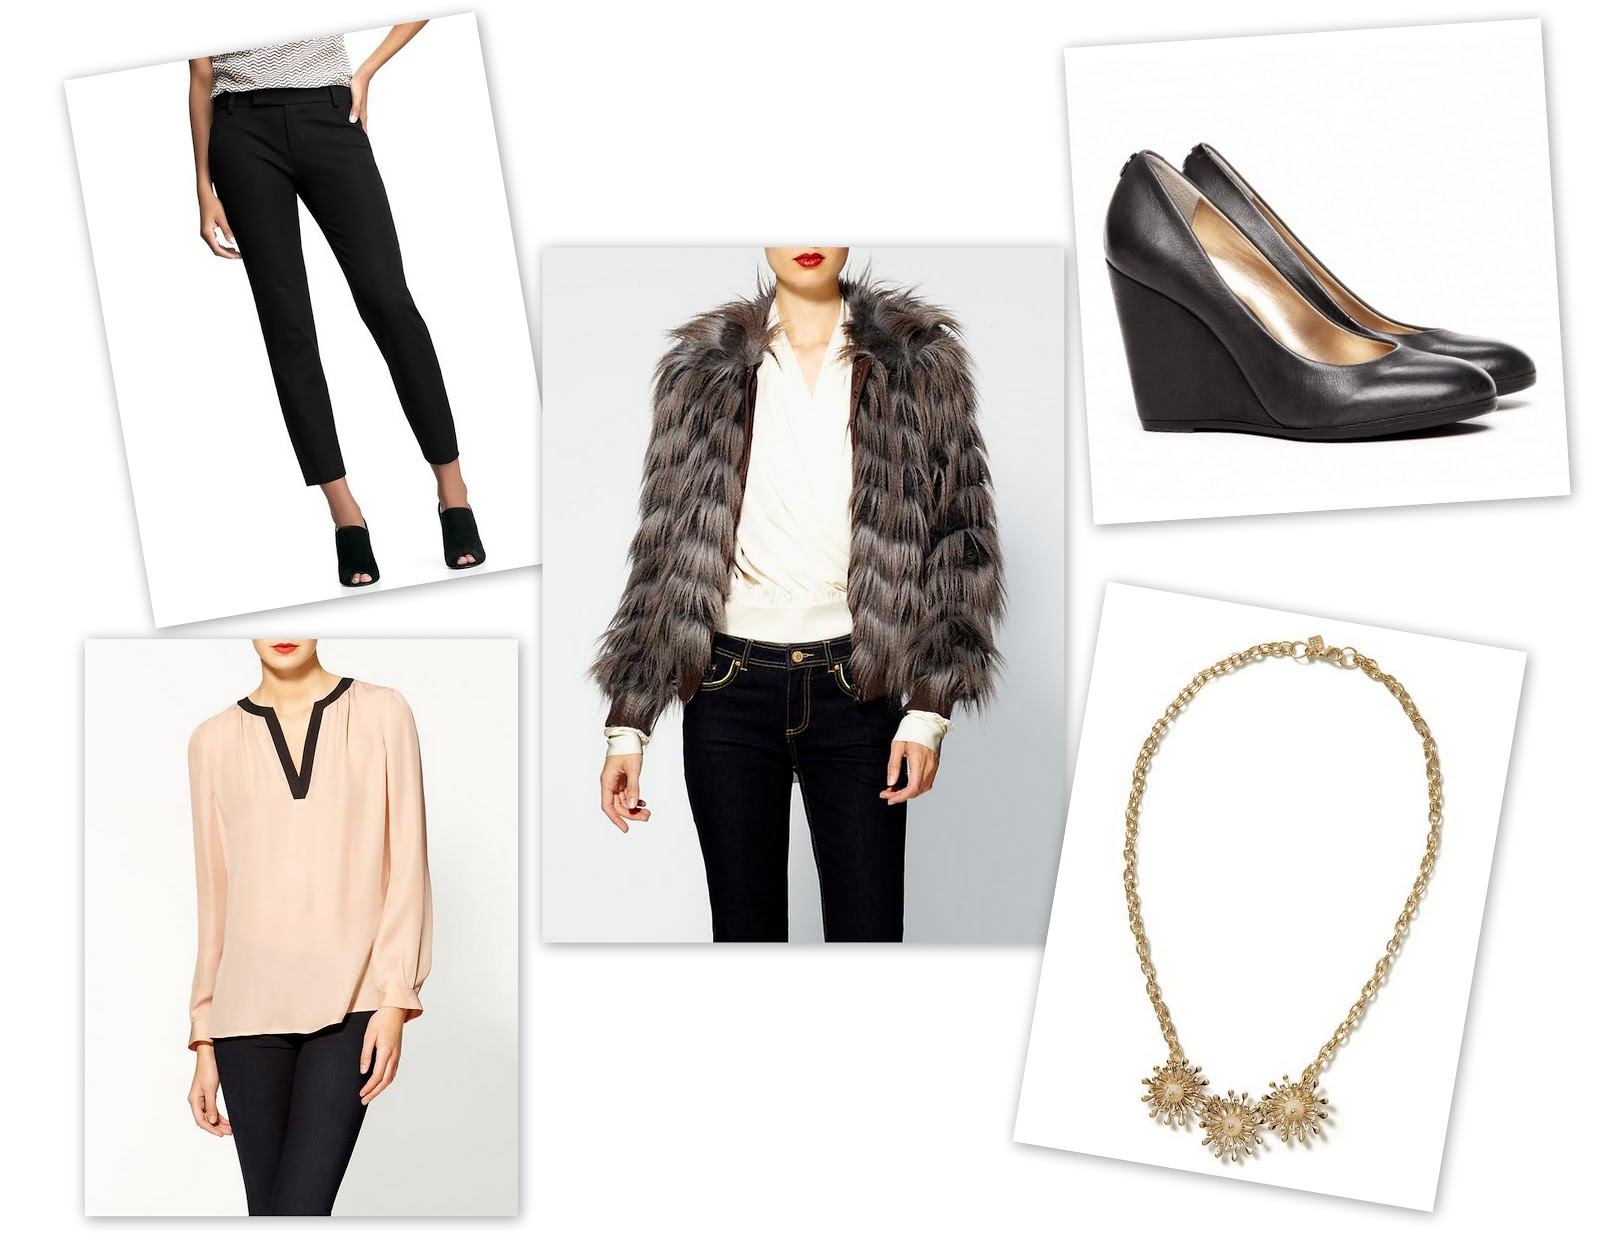 fashion tips, fashion blog, style, what's your style, developing your style, chic mom